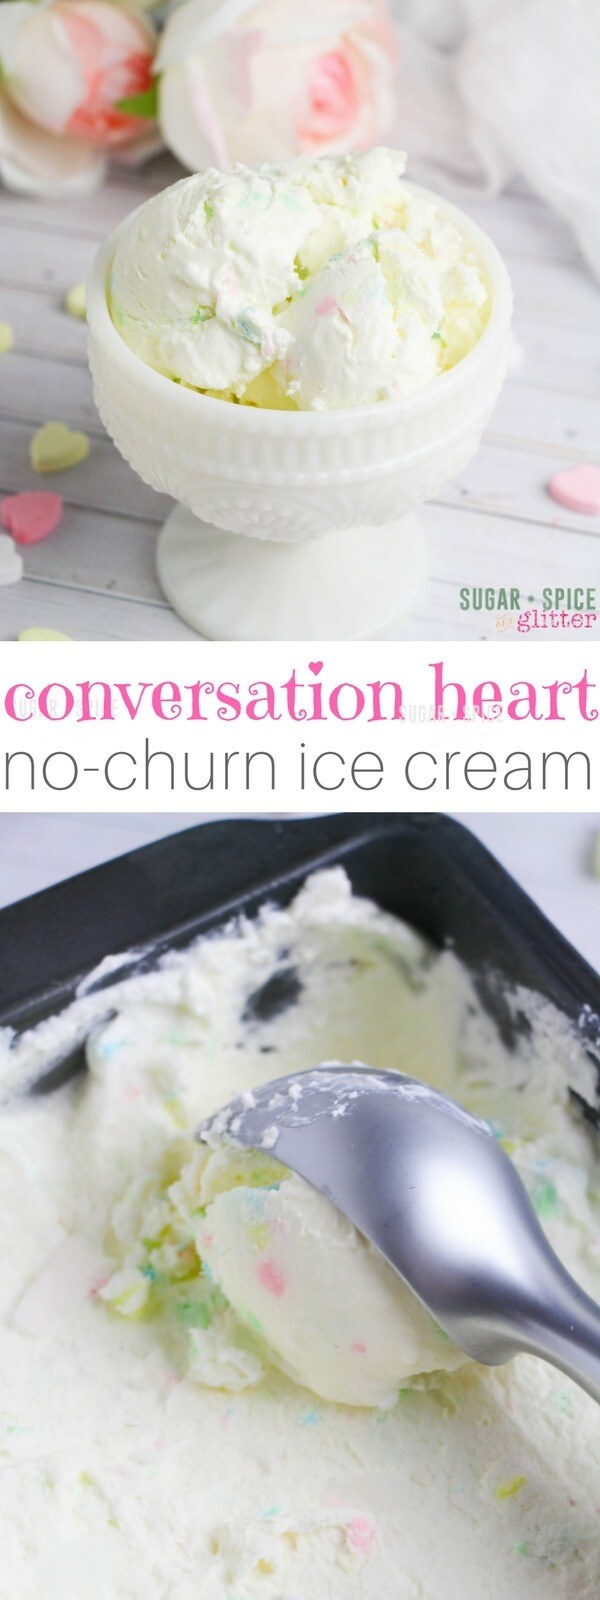 A sweet and creamy Valentine's Day dessert using conversation hearts for a cute, pastel-flecked effect. This easy no-churn ice cream recipe takes less than 5 minutes to whip up and can be enjoyed in just 2 hours